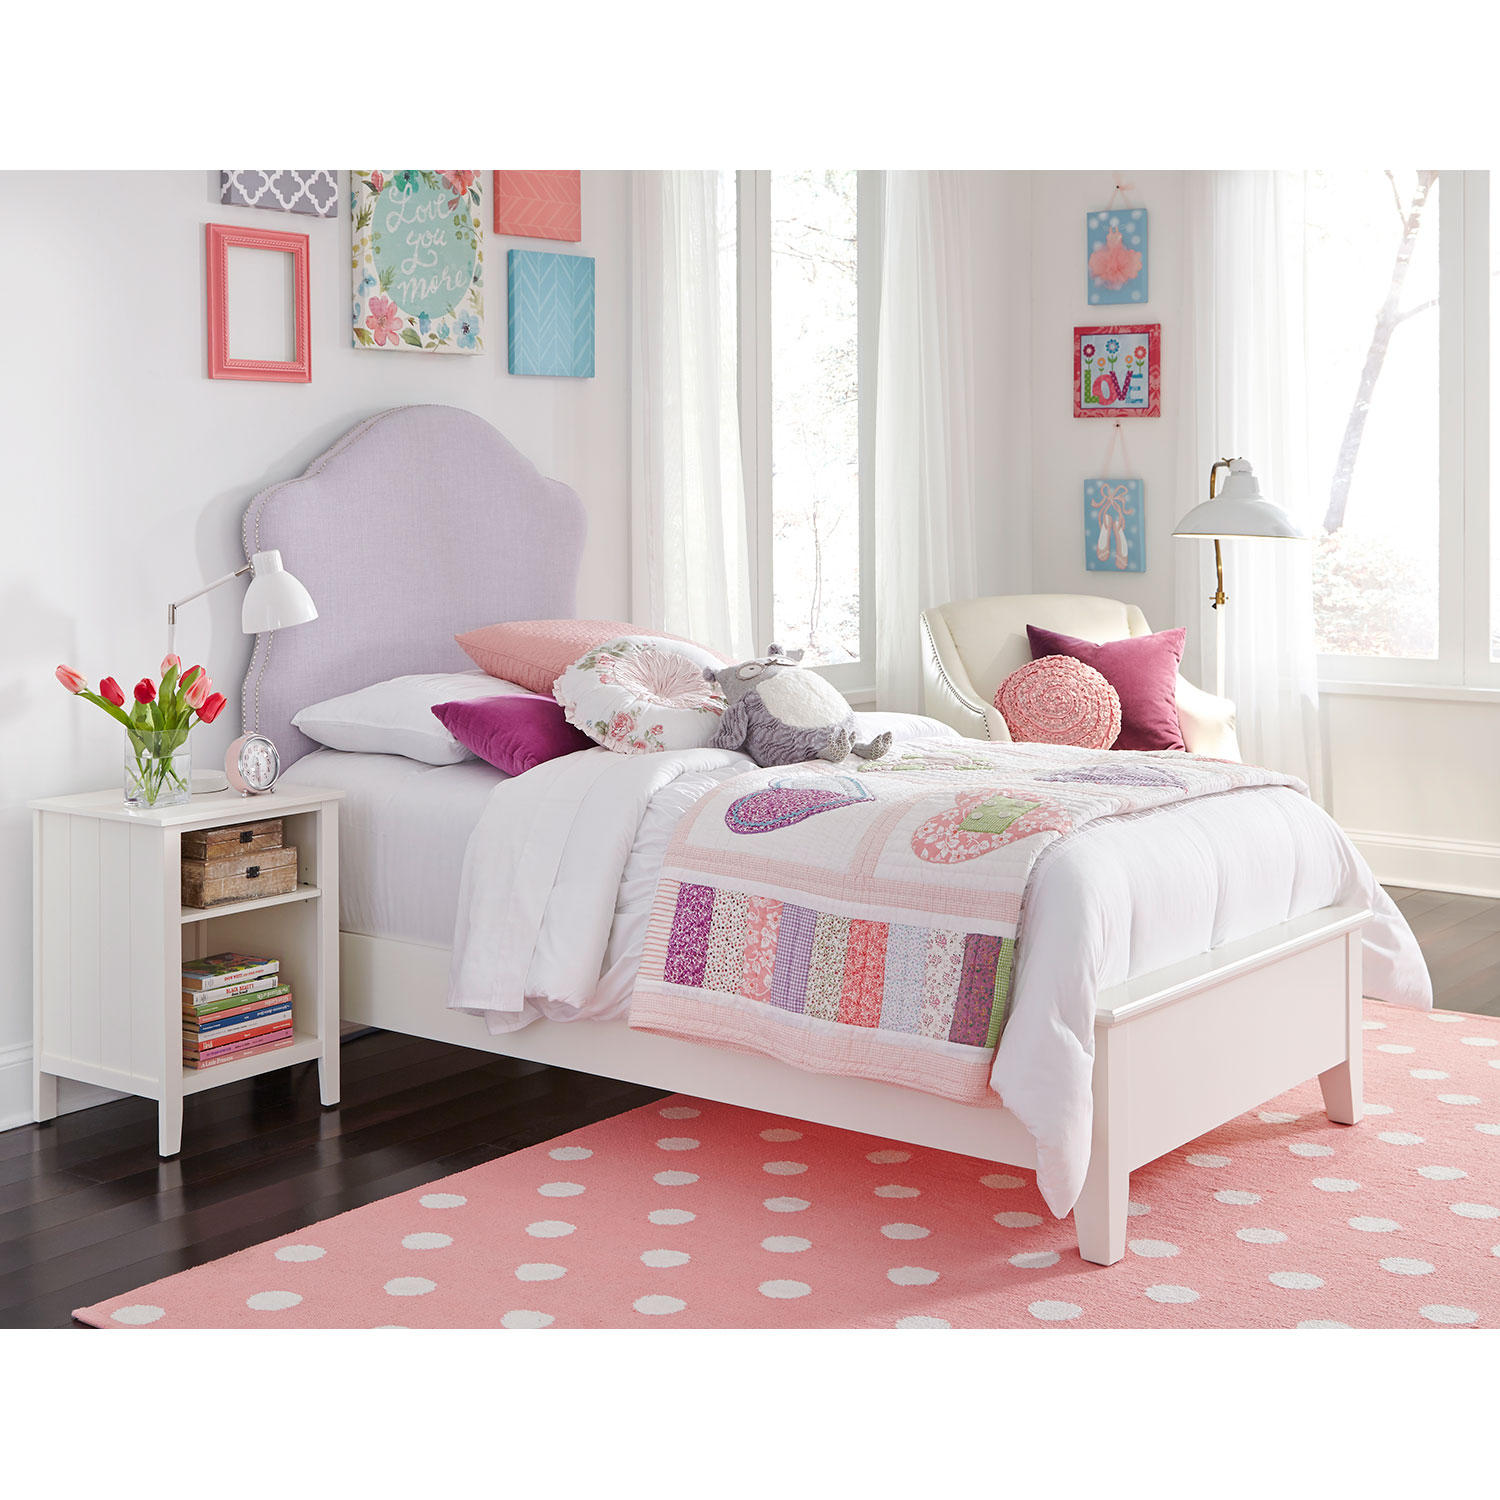 Home Meridian International Savannah Youth Bedroom Set